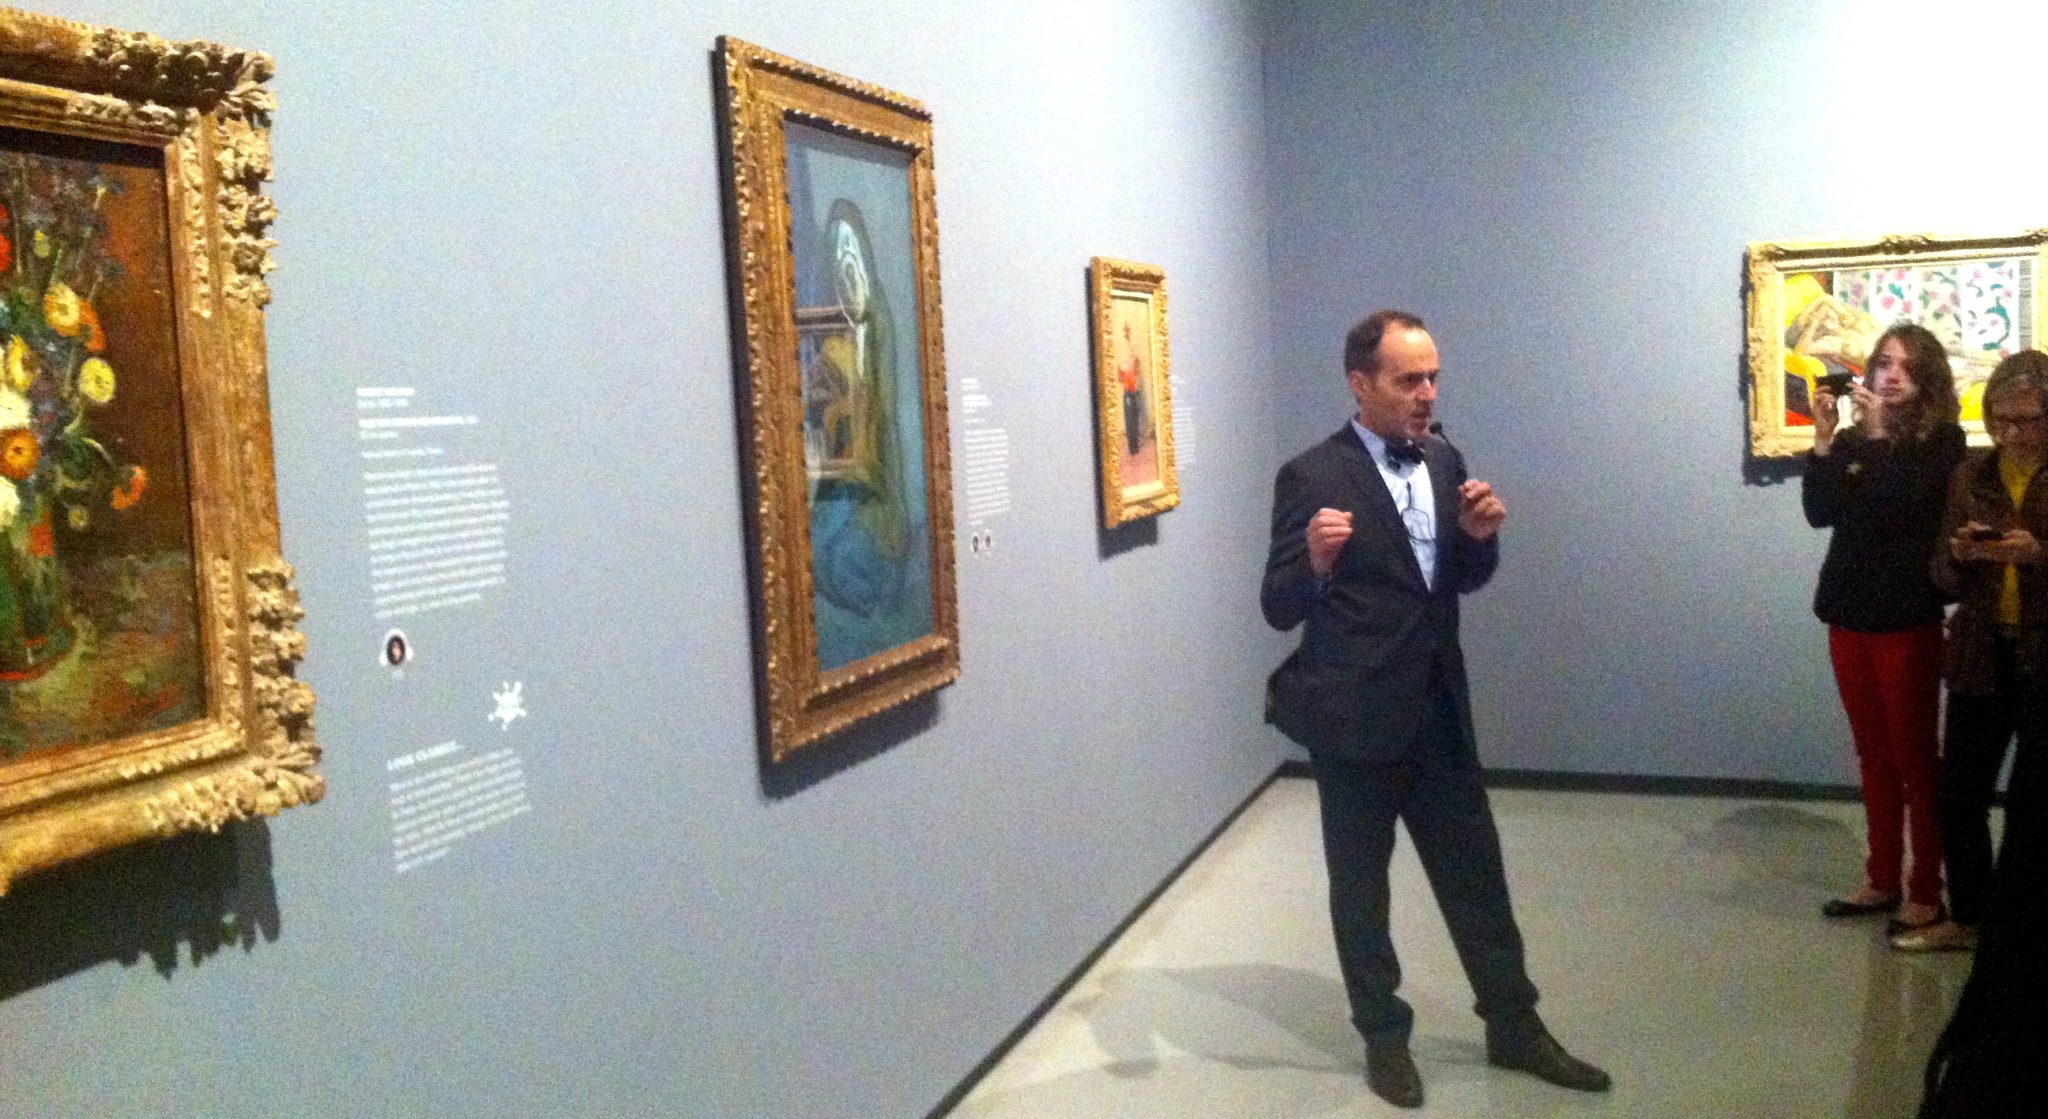 Oh, just standing around a Van Gogh, Picasso and Matisse.